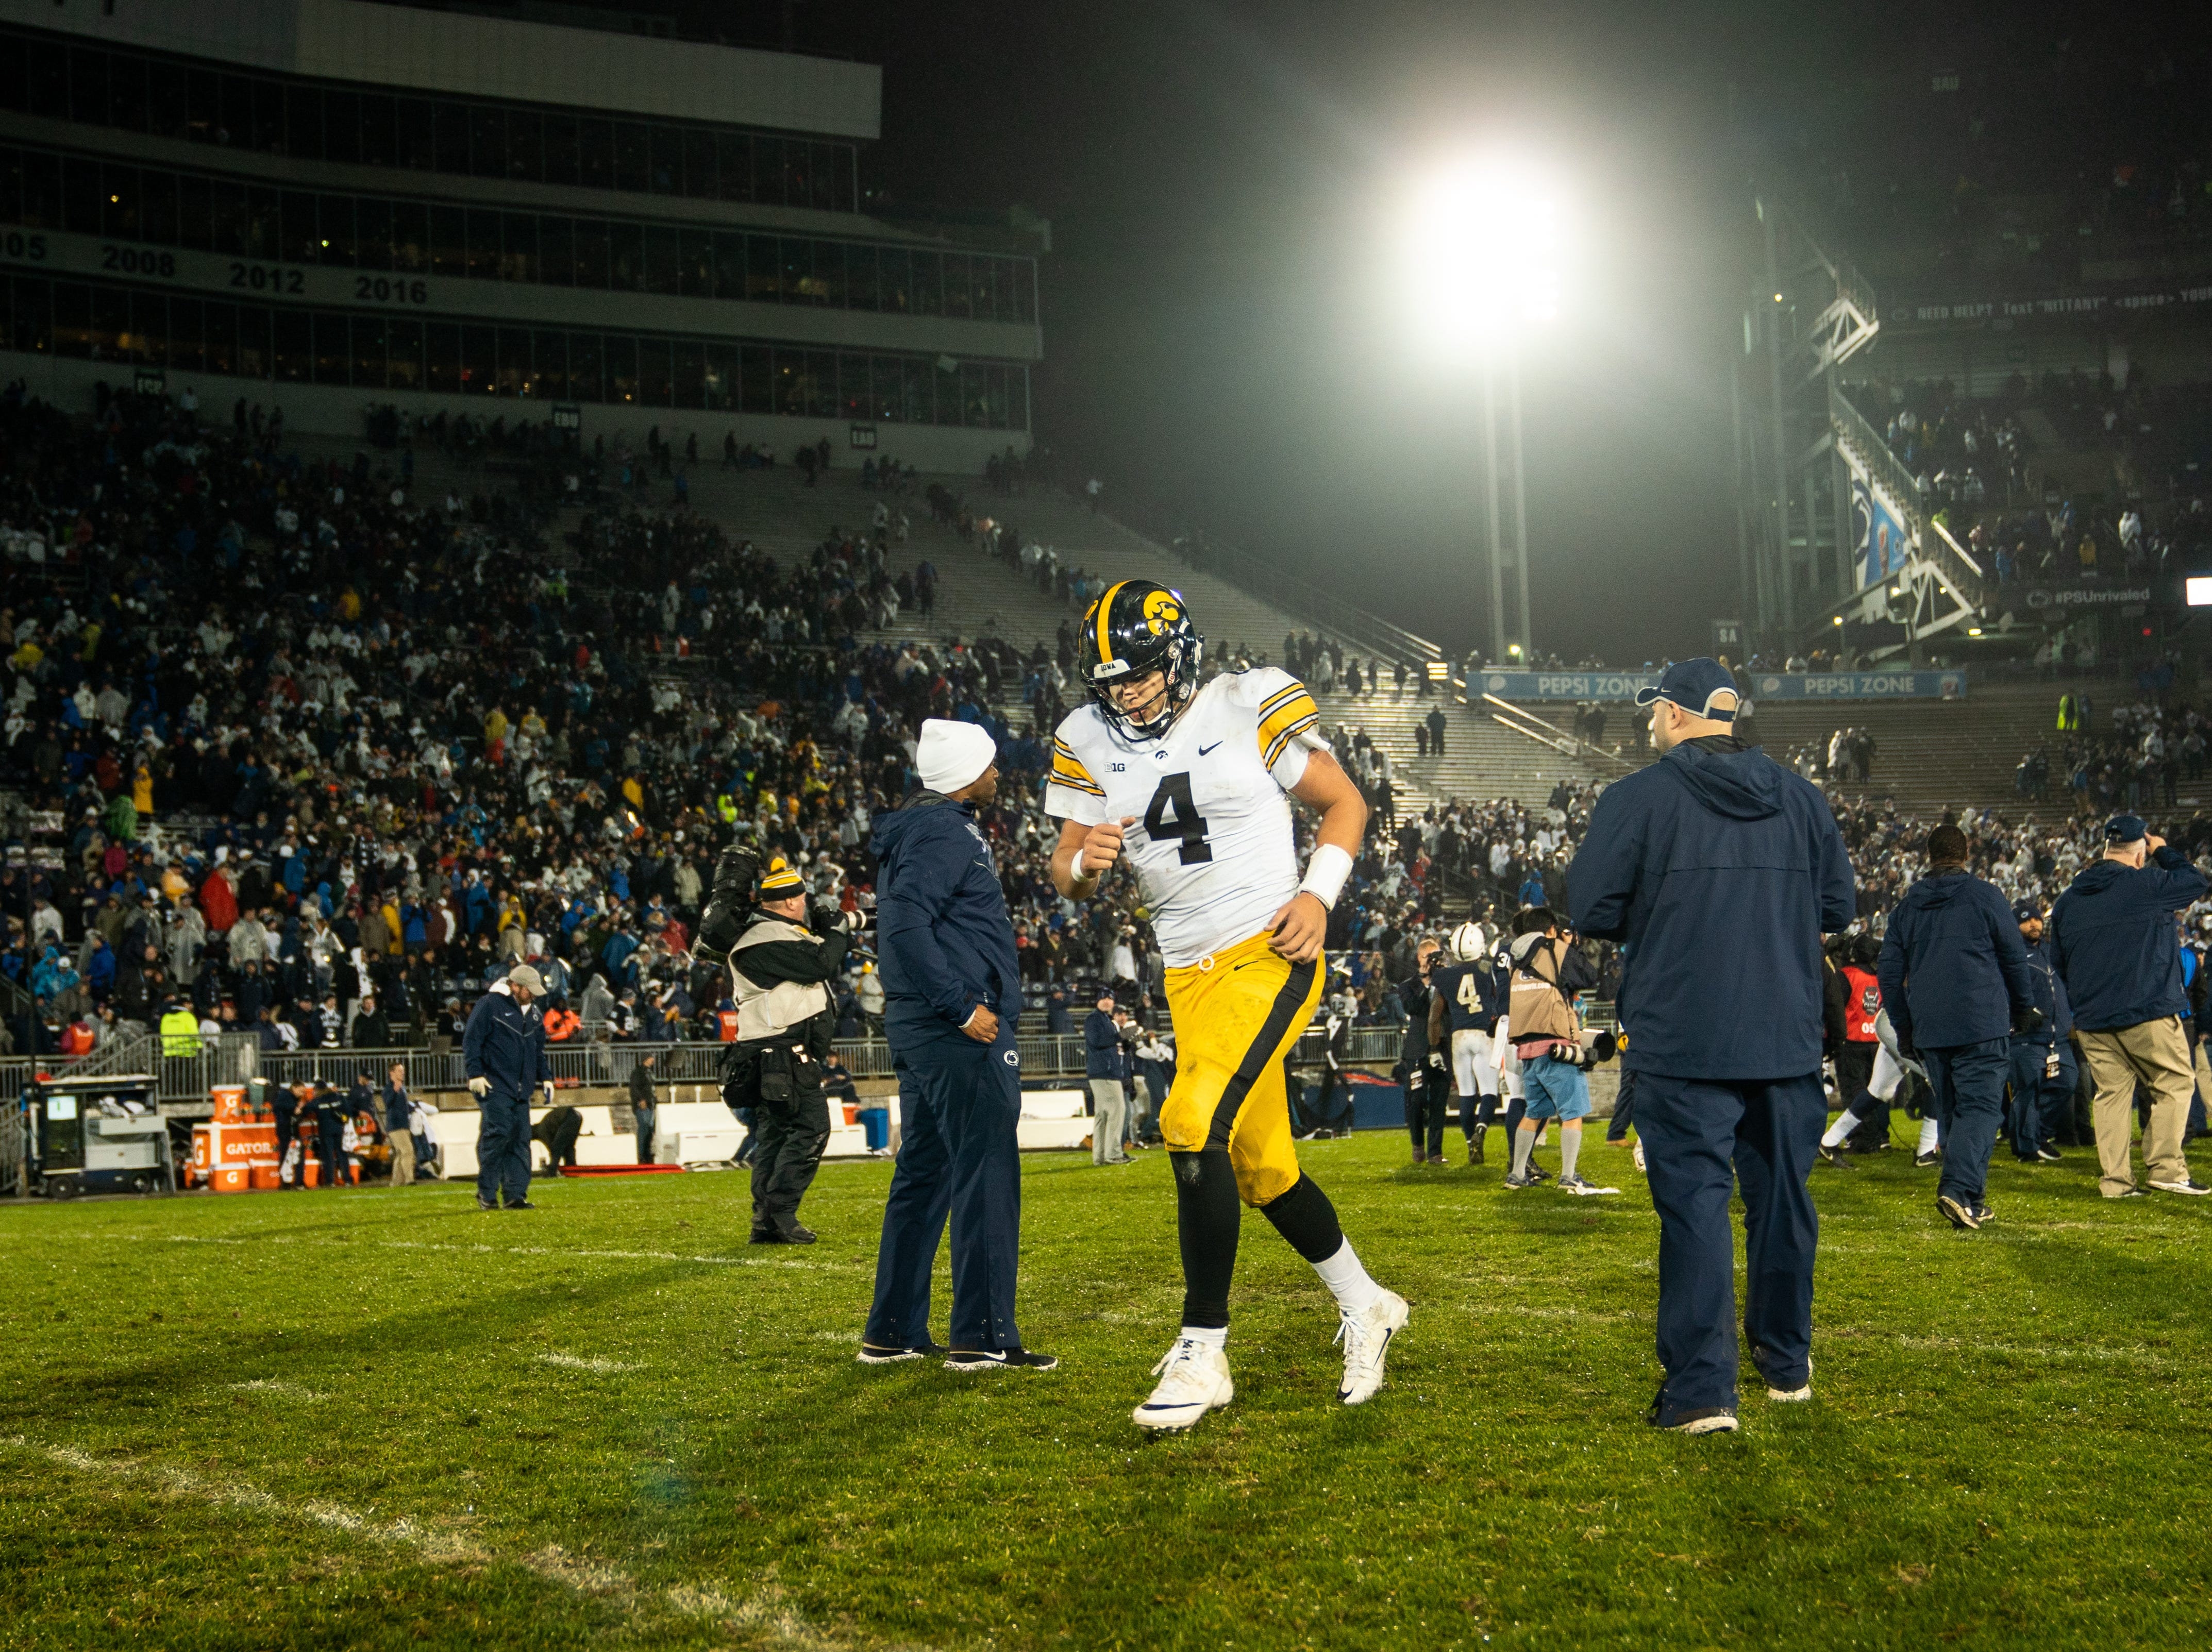 Nate Stanley #4 of the Iowa Hawkeyes walks off the field after a 30-24 to the Penn State Nittany Lions at Beaver Stadium on Saturday, October 27, 2018, in State College, Pennsylvania.